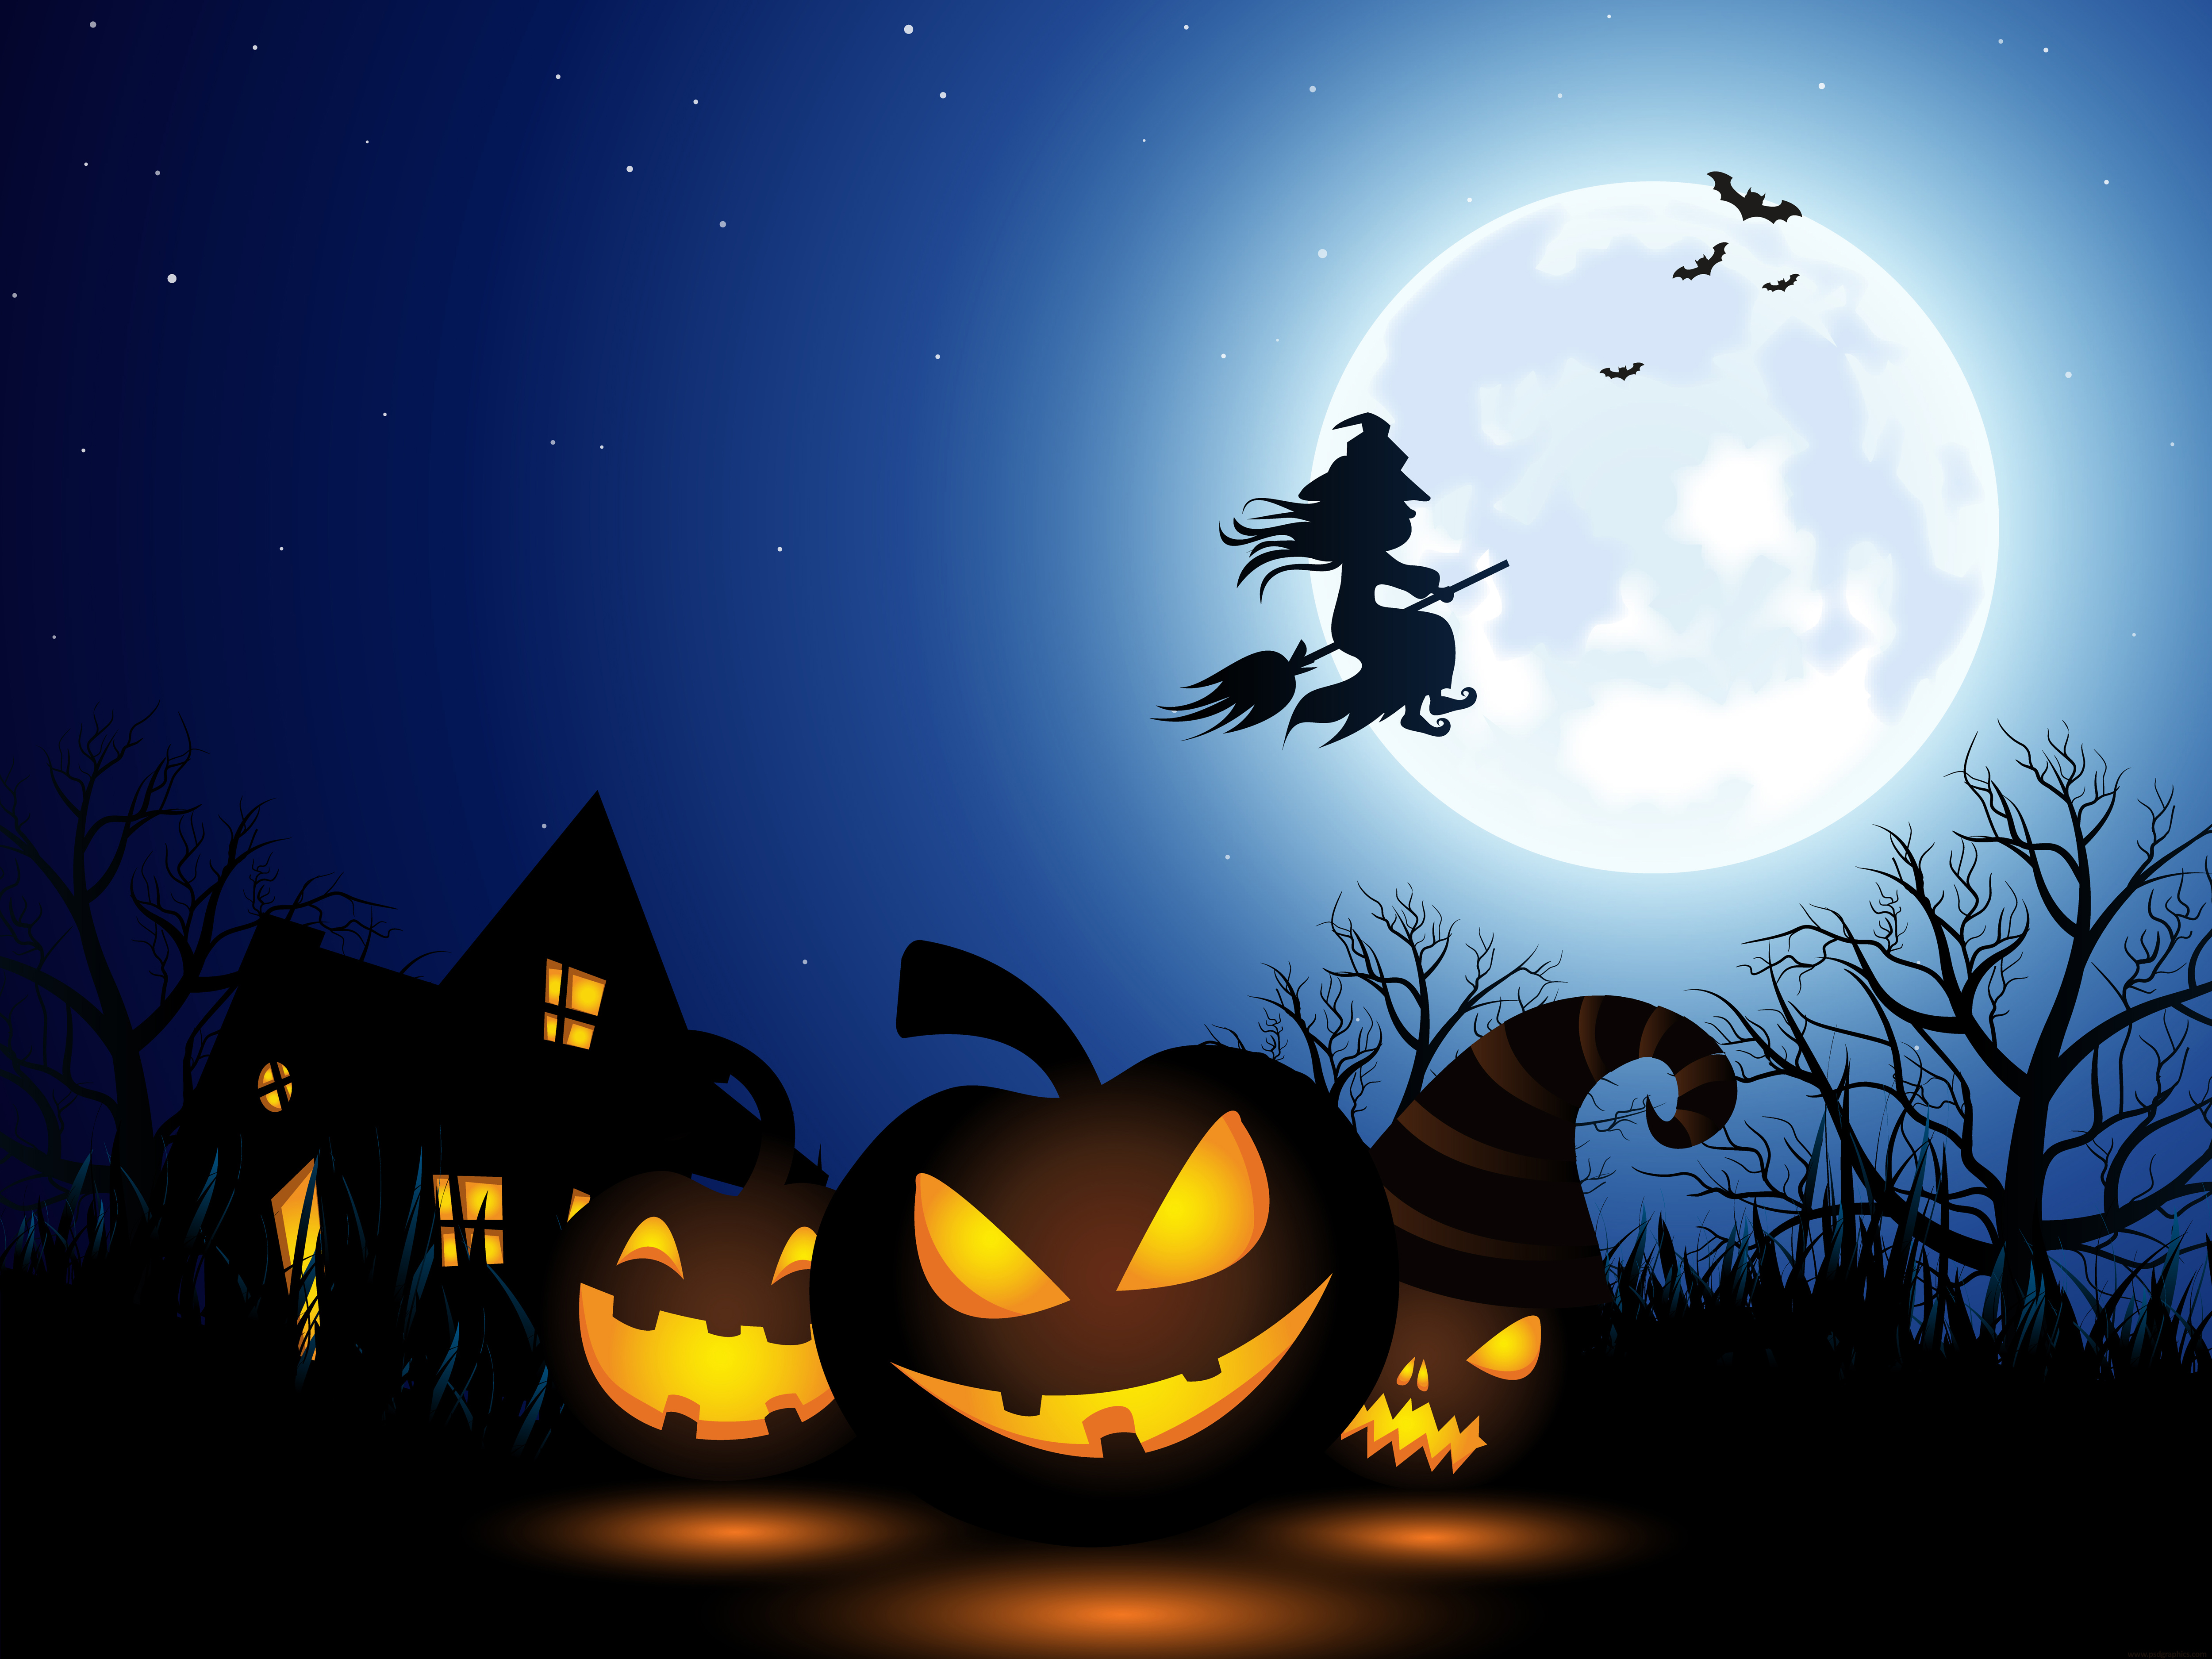 Halloween Spooky Pictures.Spooky Halloween Illustration Psdgraphics